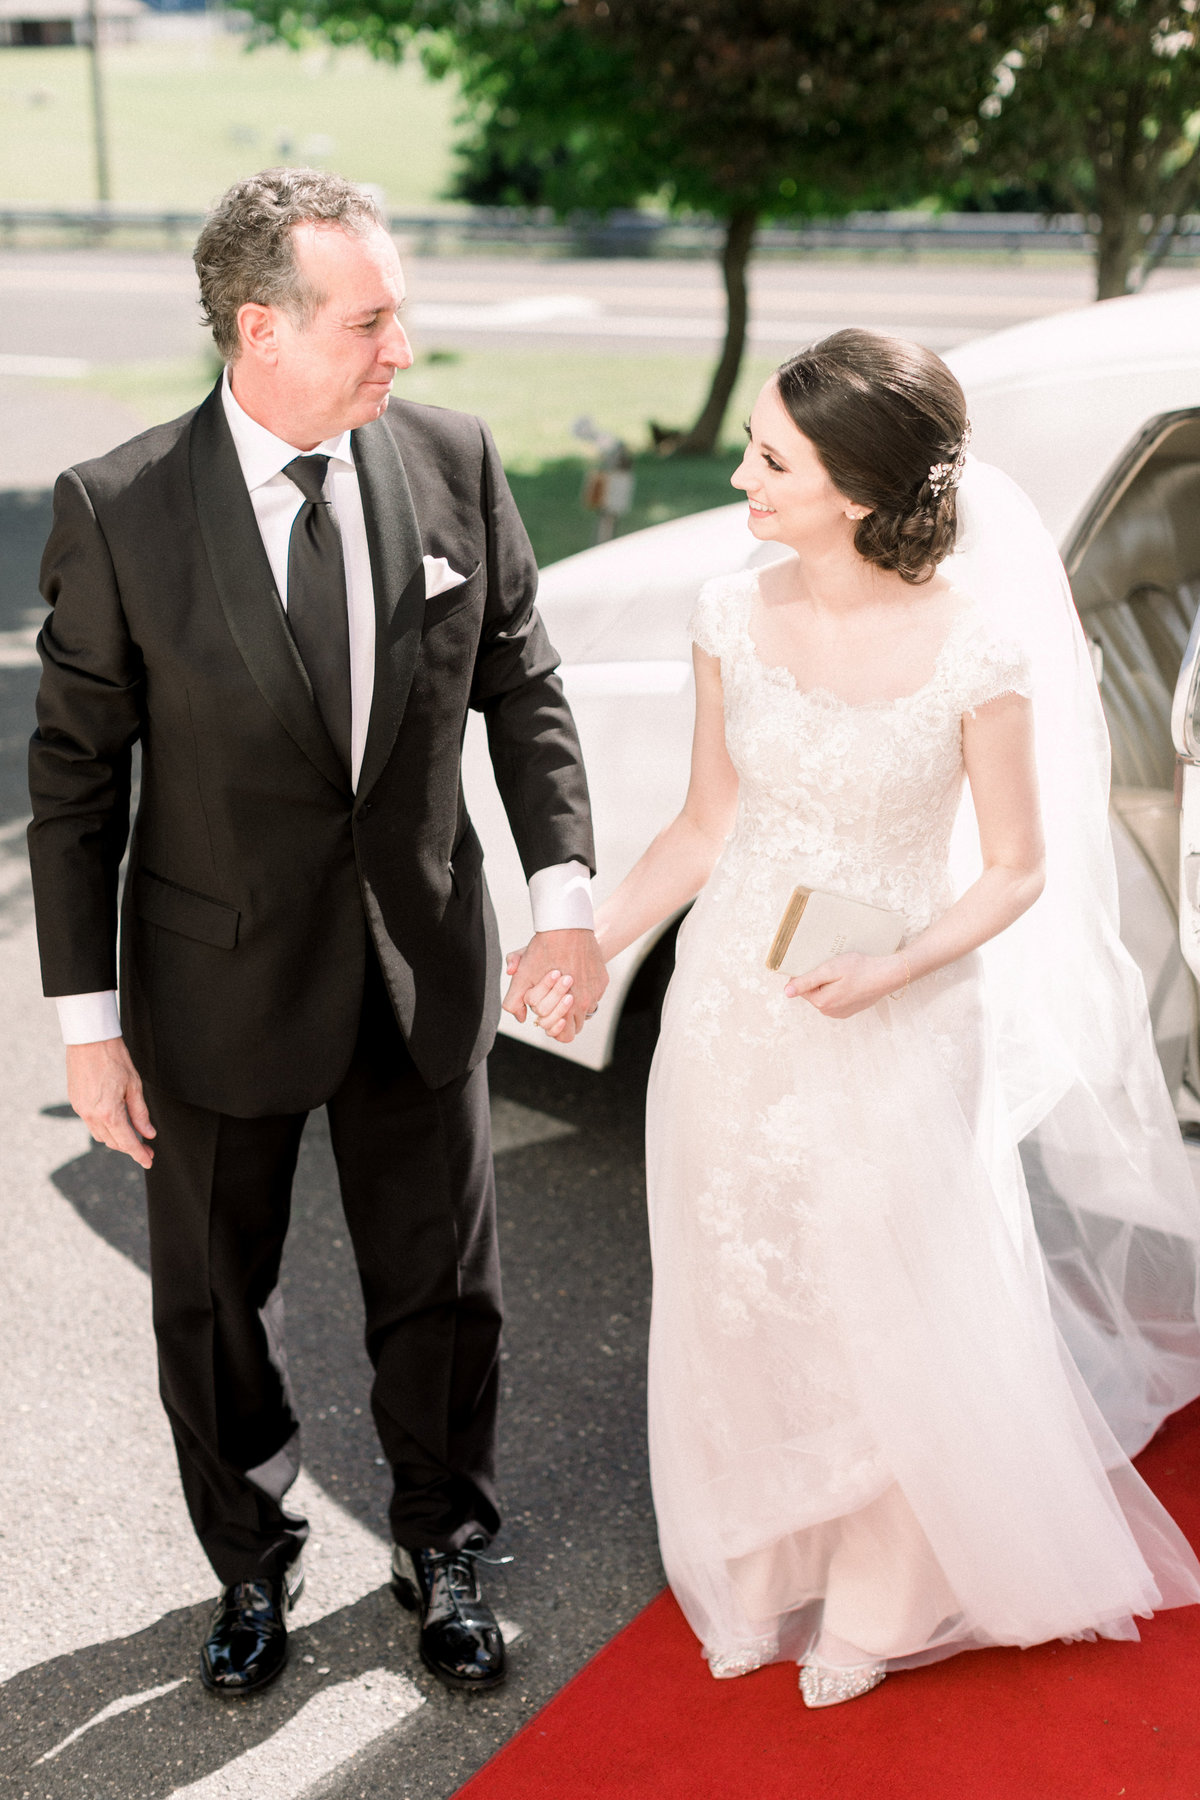 Kate & Jack_Wedding_Ceremony_1049